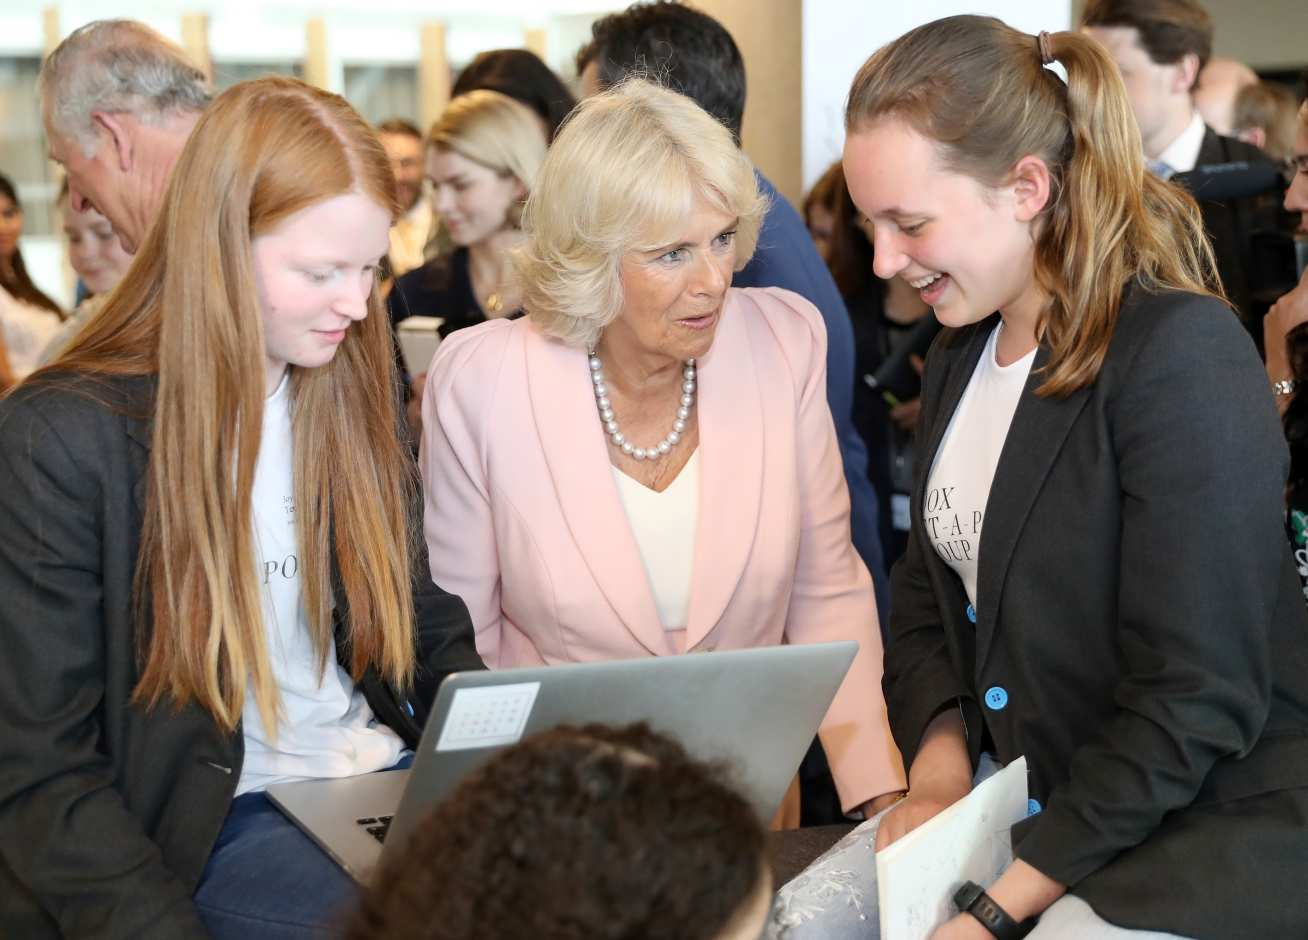 HRH The Duchess of Cornwall talks to West London schoolgirls learning to code at YOOX NET-A-PORTER GROUP's Tech Hub.